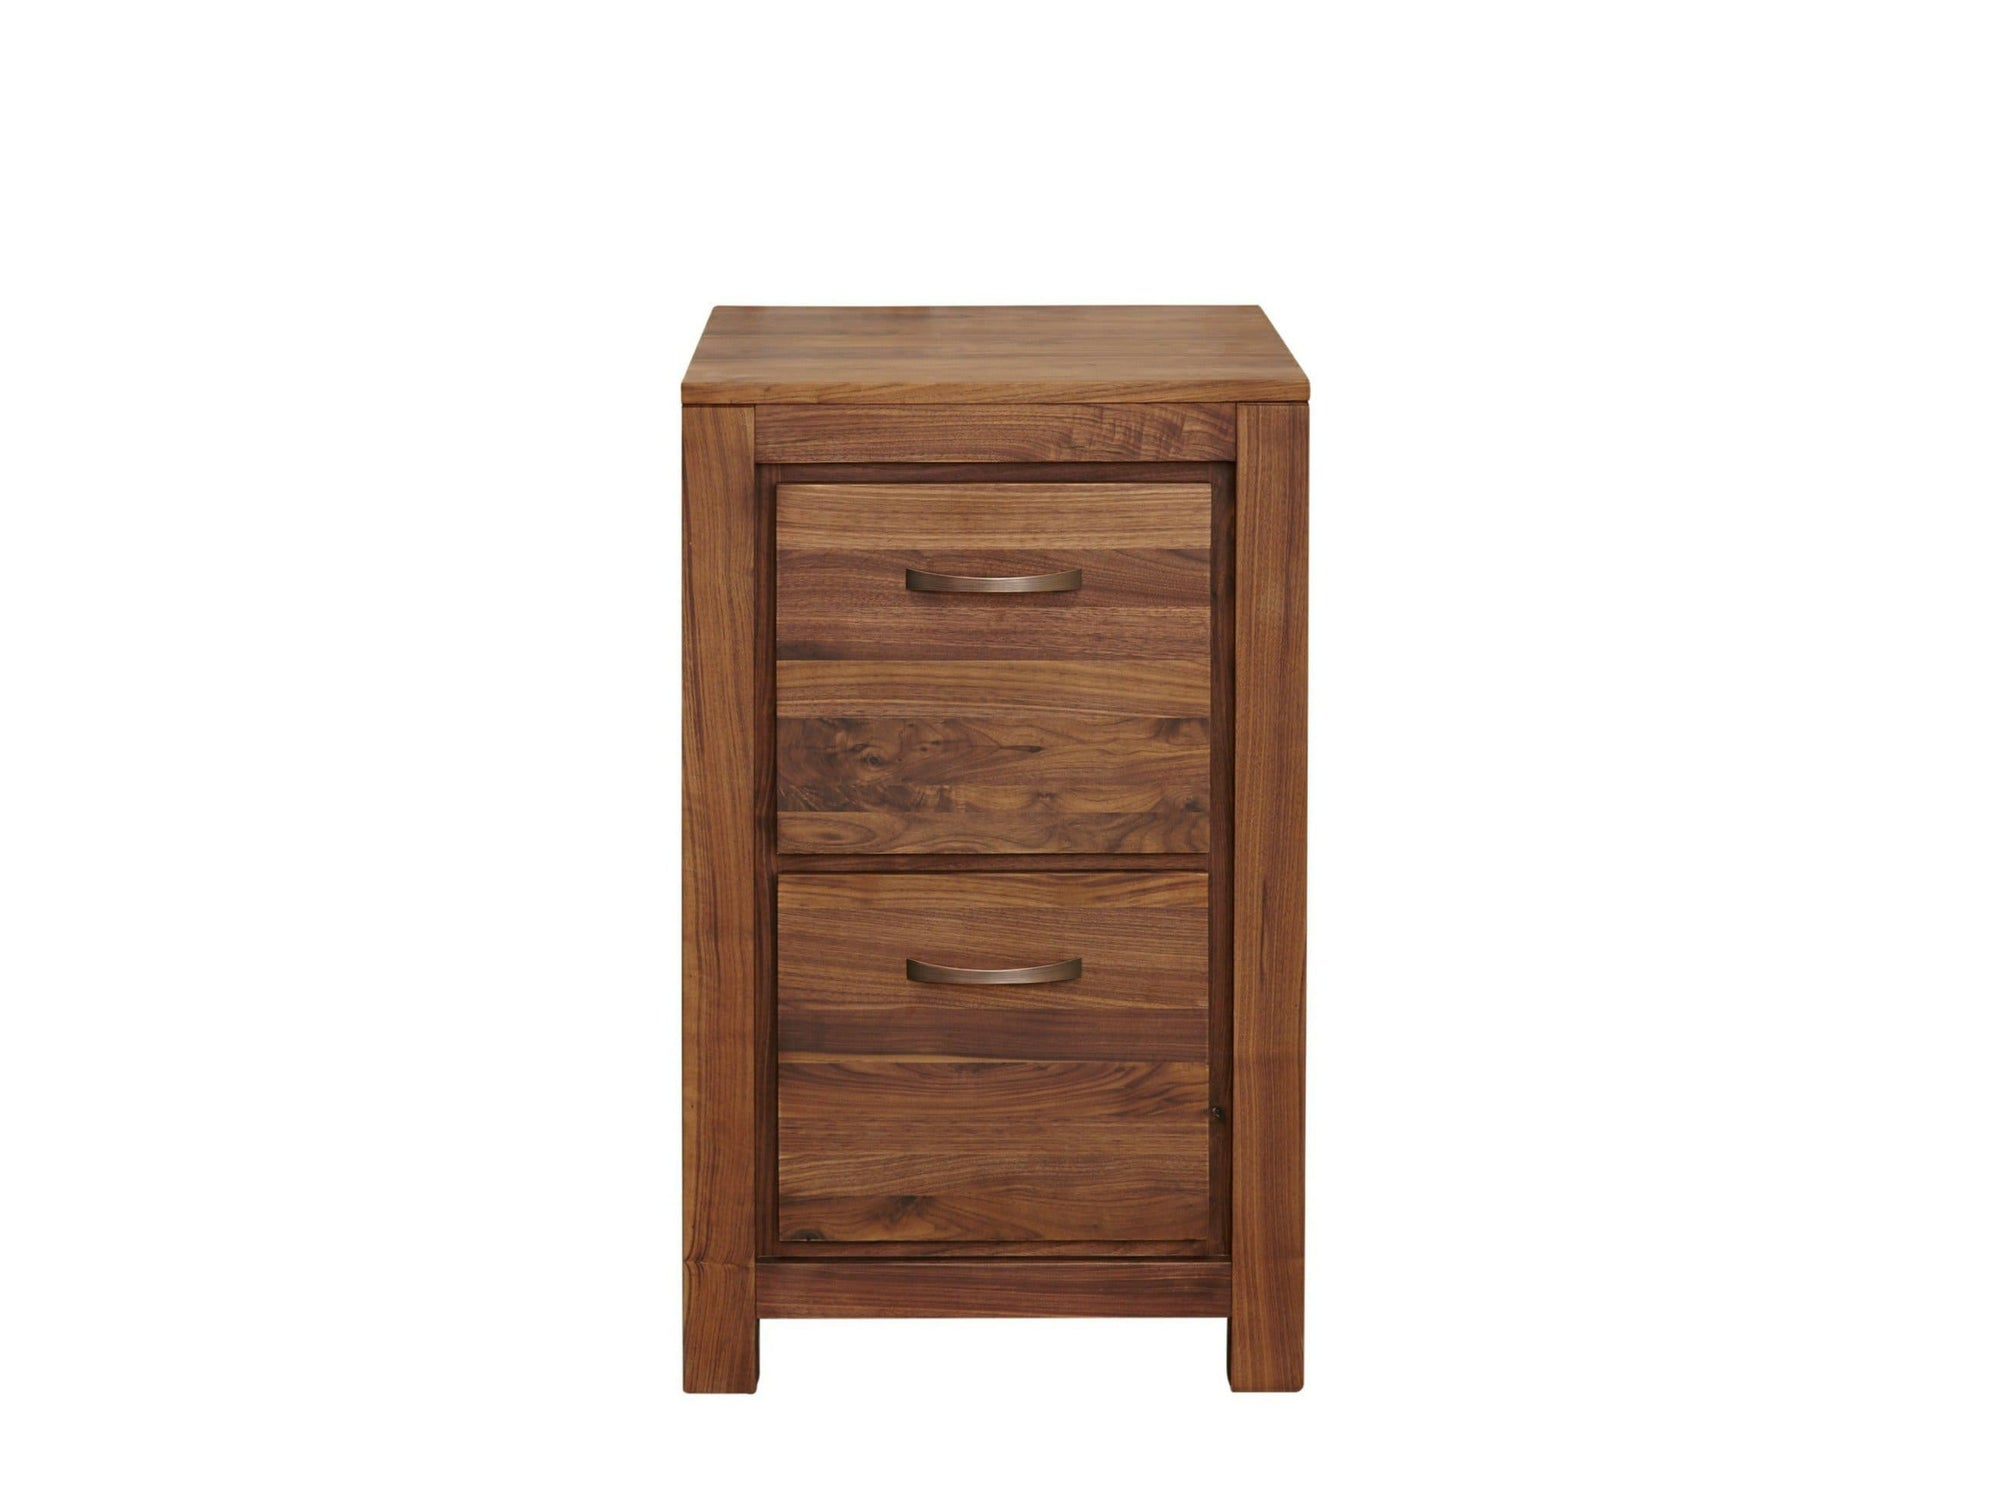 Orsina low height, two drawer walnut filing cabinet